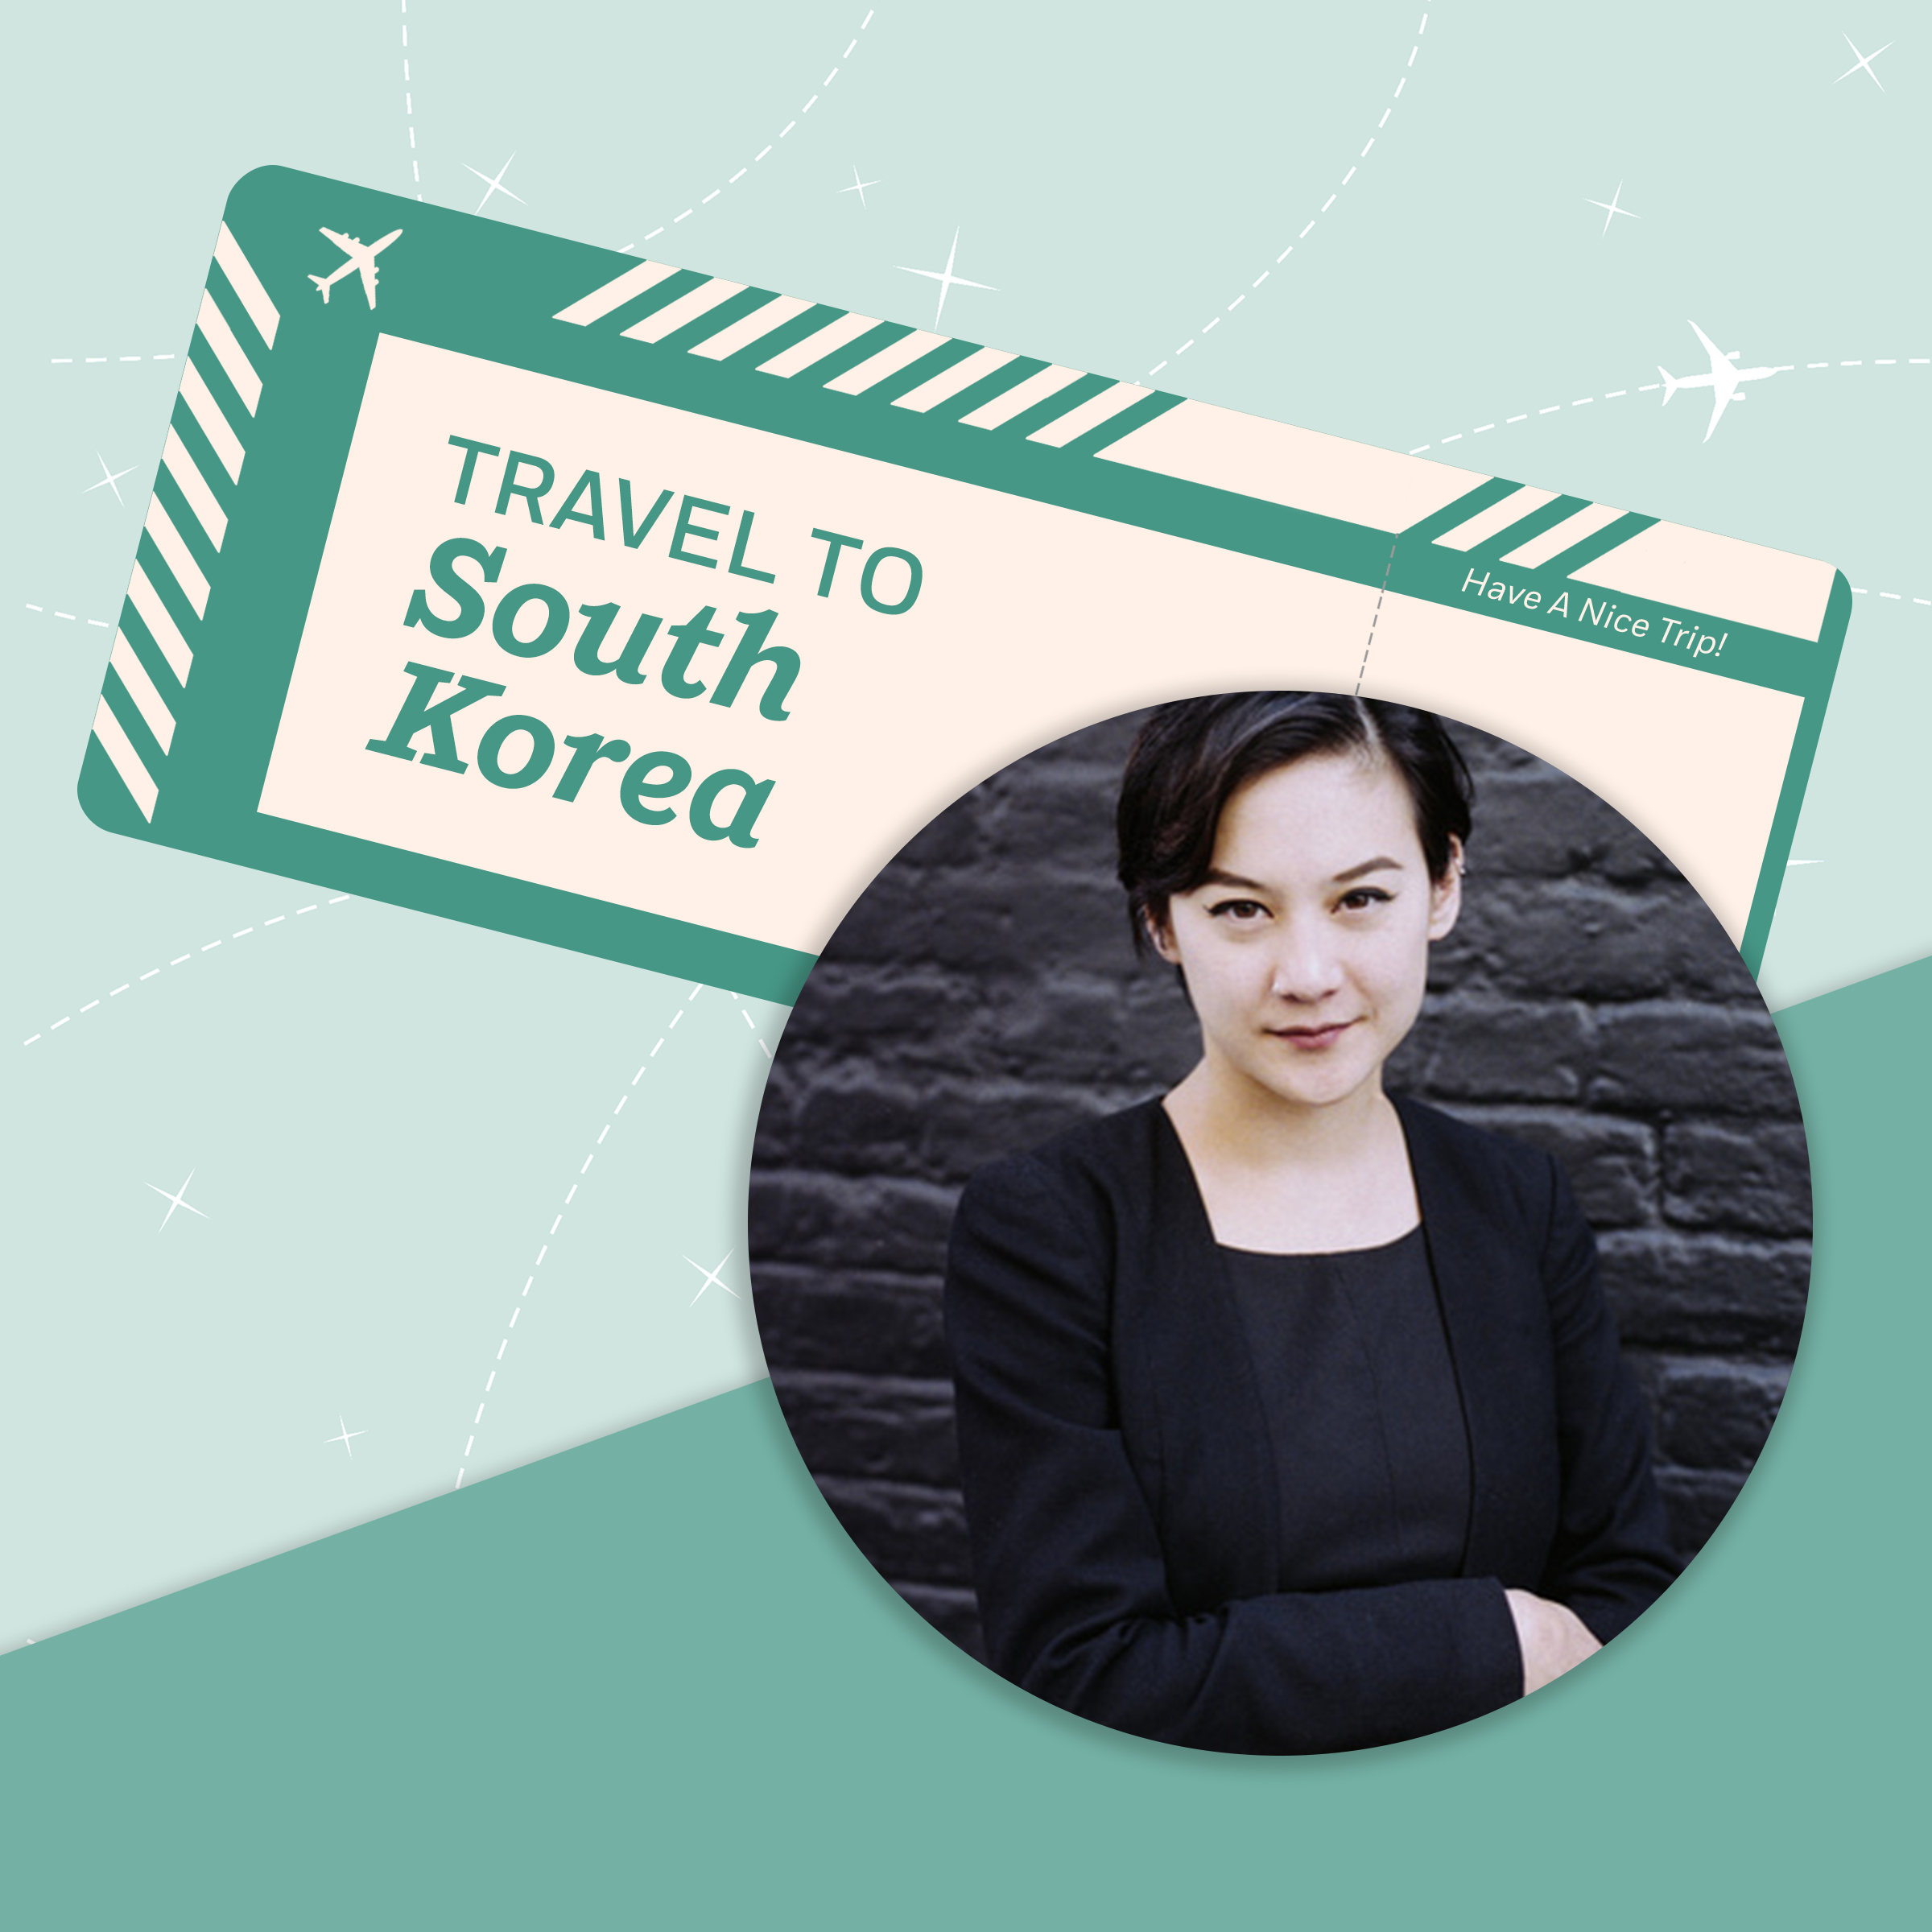 Travel to South Korea with Michelle Zauner